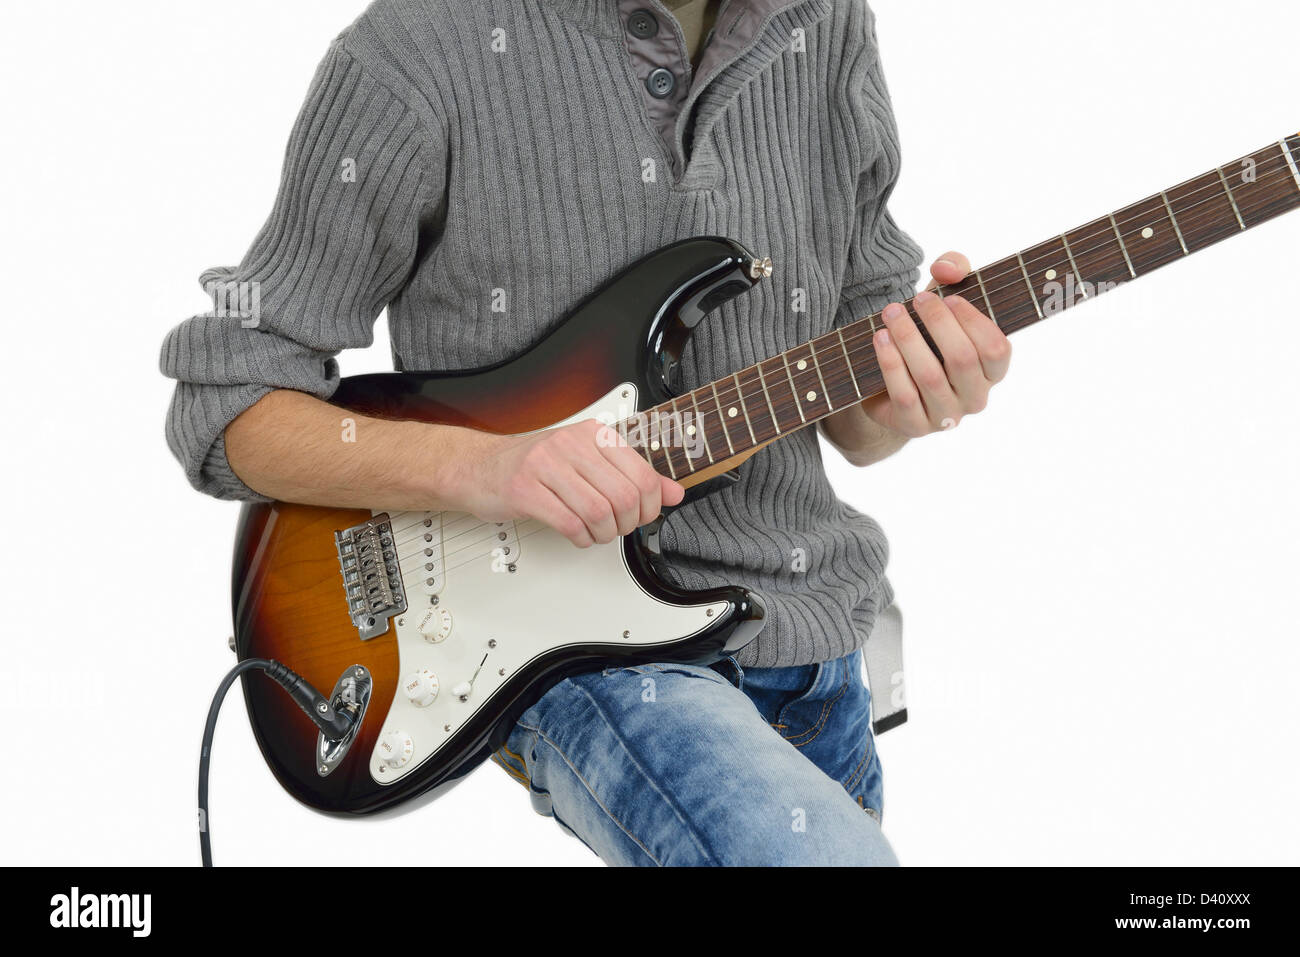 Teenager playing electric guitar - Stock Image